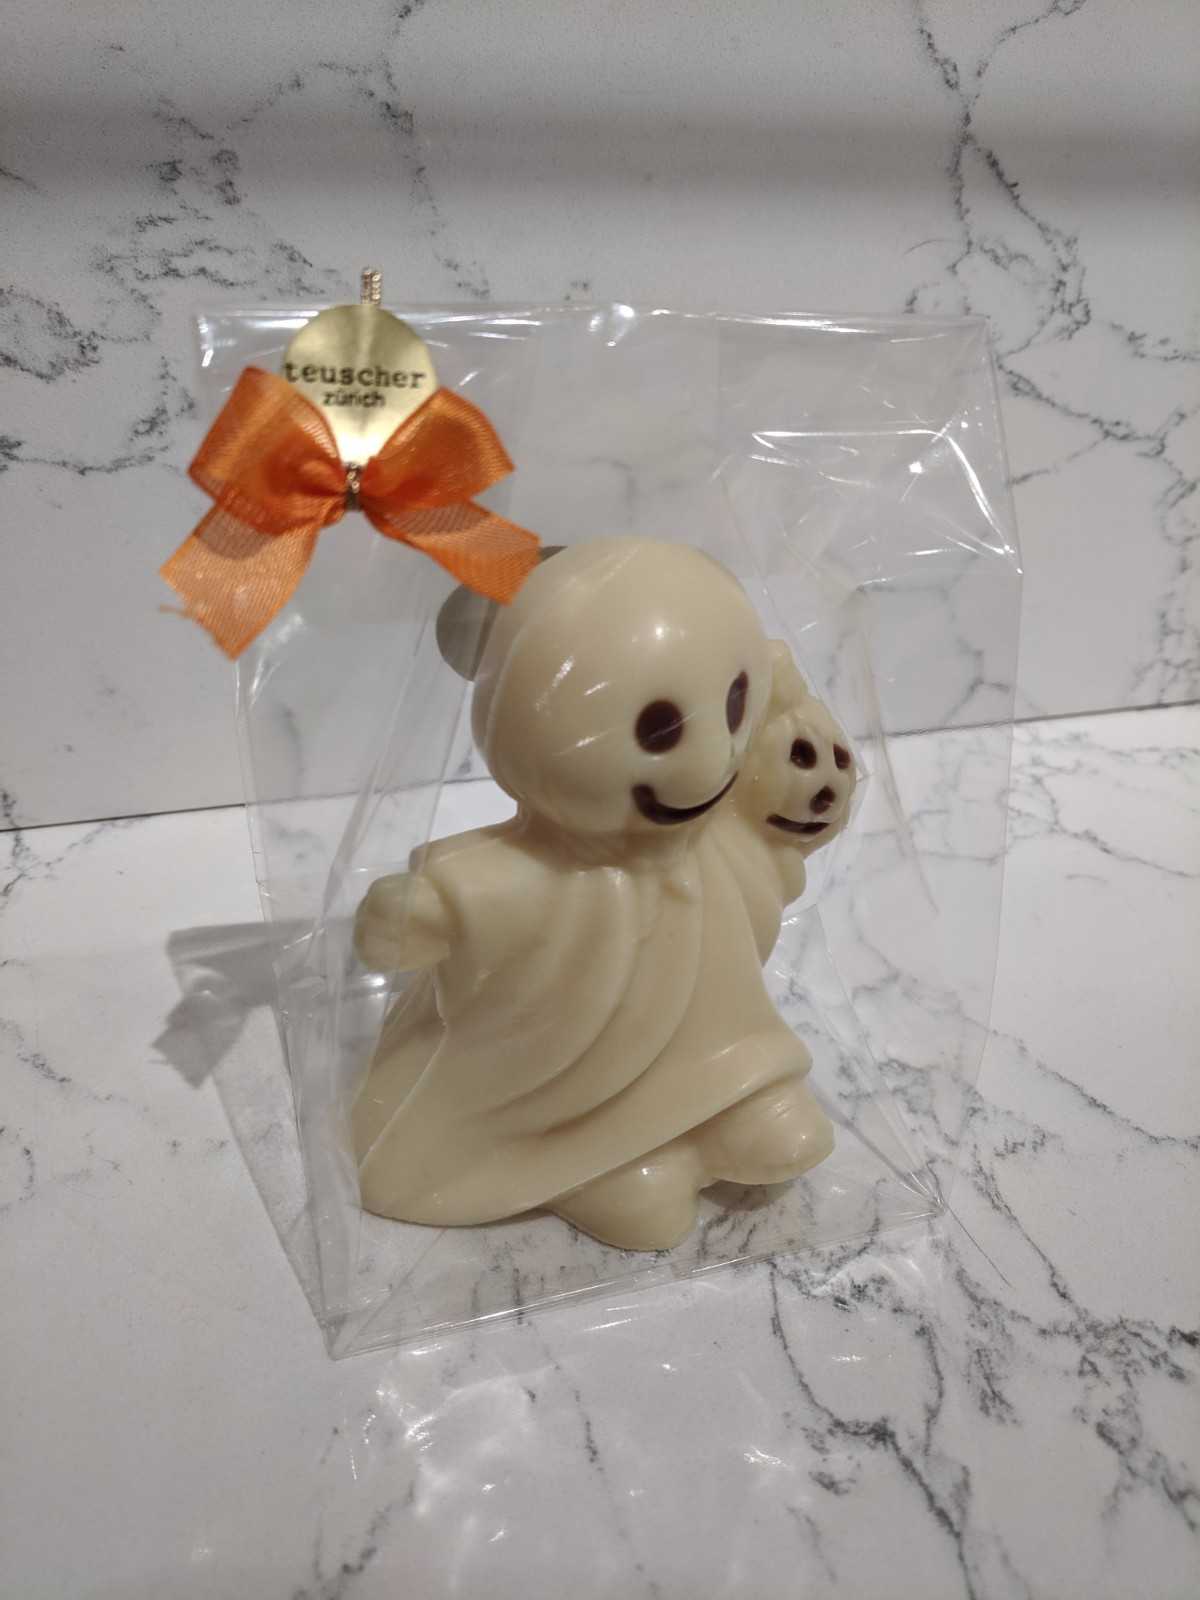 003.3-ghost-in-cello-white-chocolate.jpg